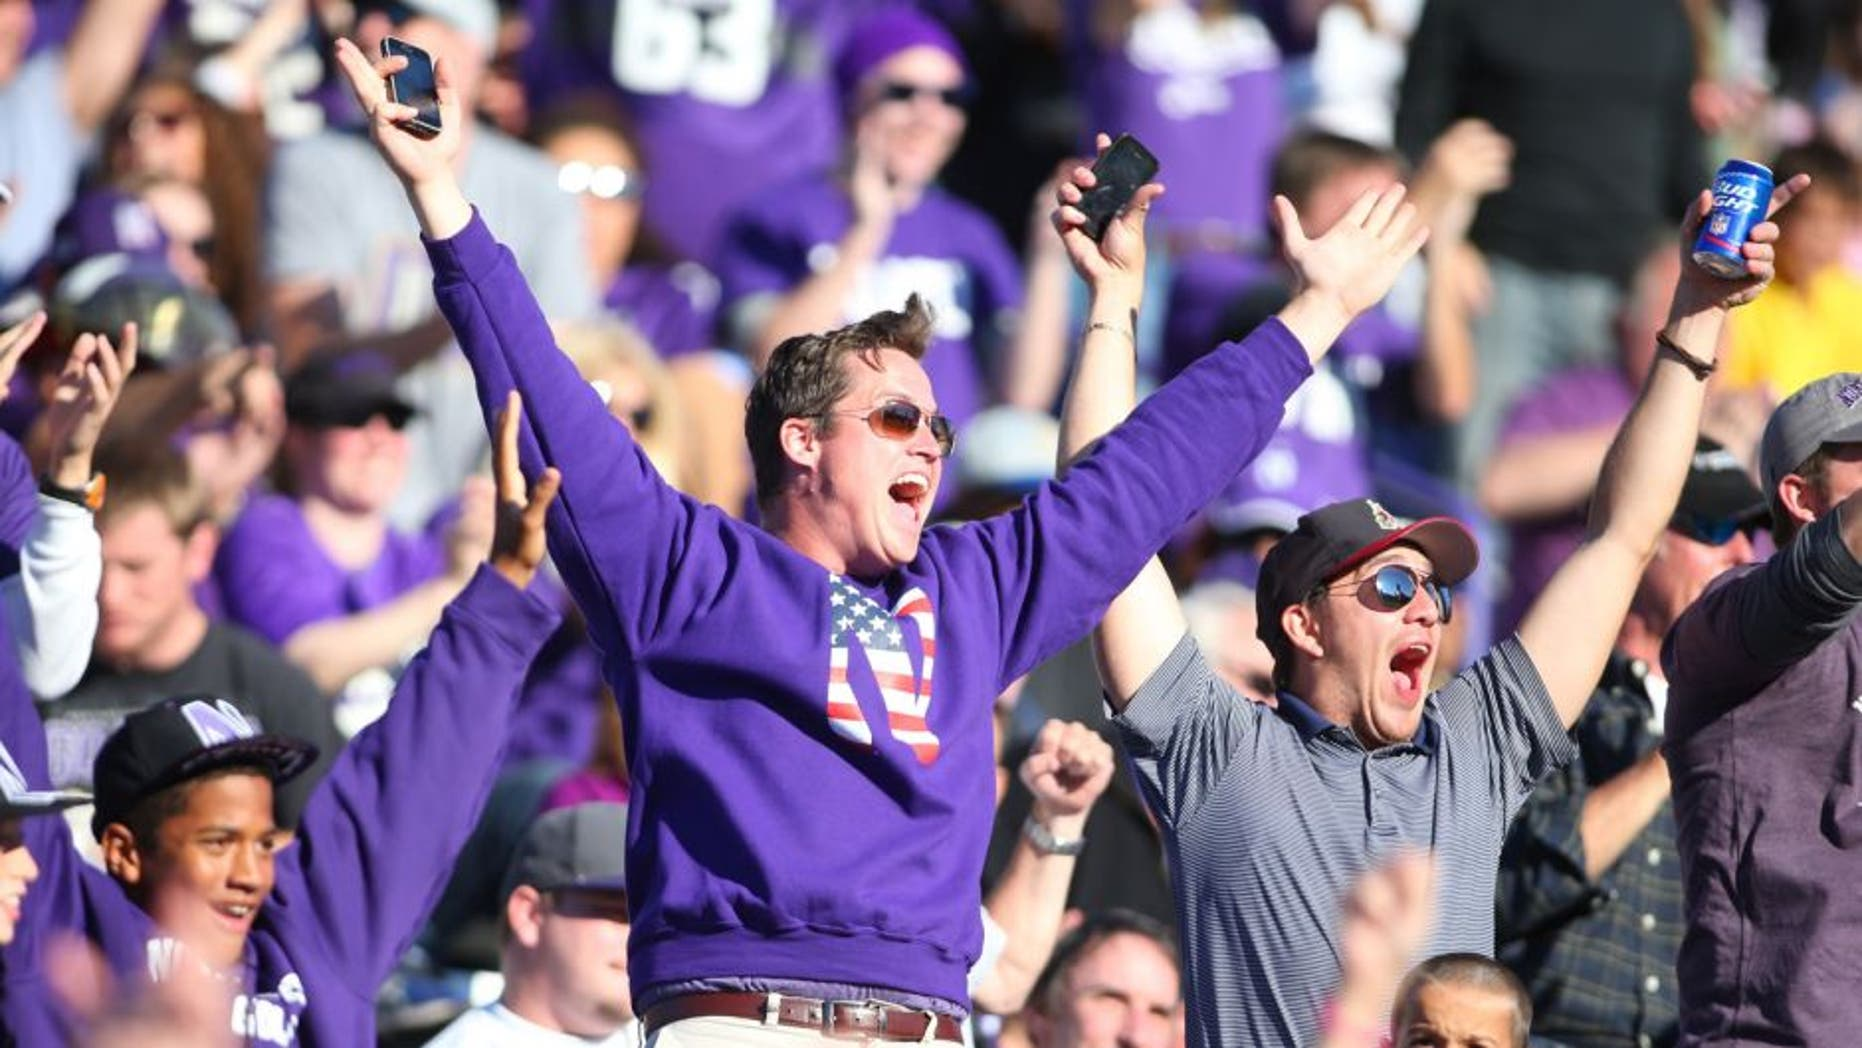 Sep 12, 2015; Evanston, IL, USA; A Northwestern Wildcats fan cheers during the game against the Eastern Illinois Panthers at Ryan Field. Mandatory Credit: Caylor Arnold-USA TODAY Sports